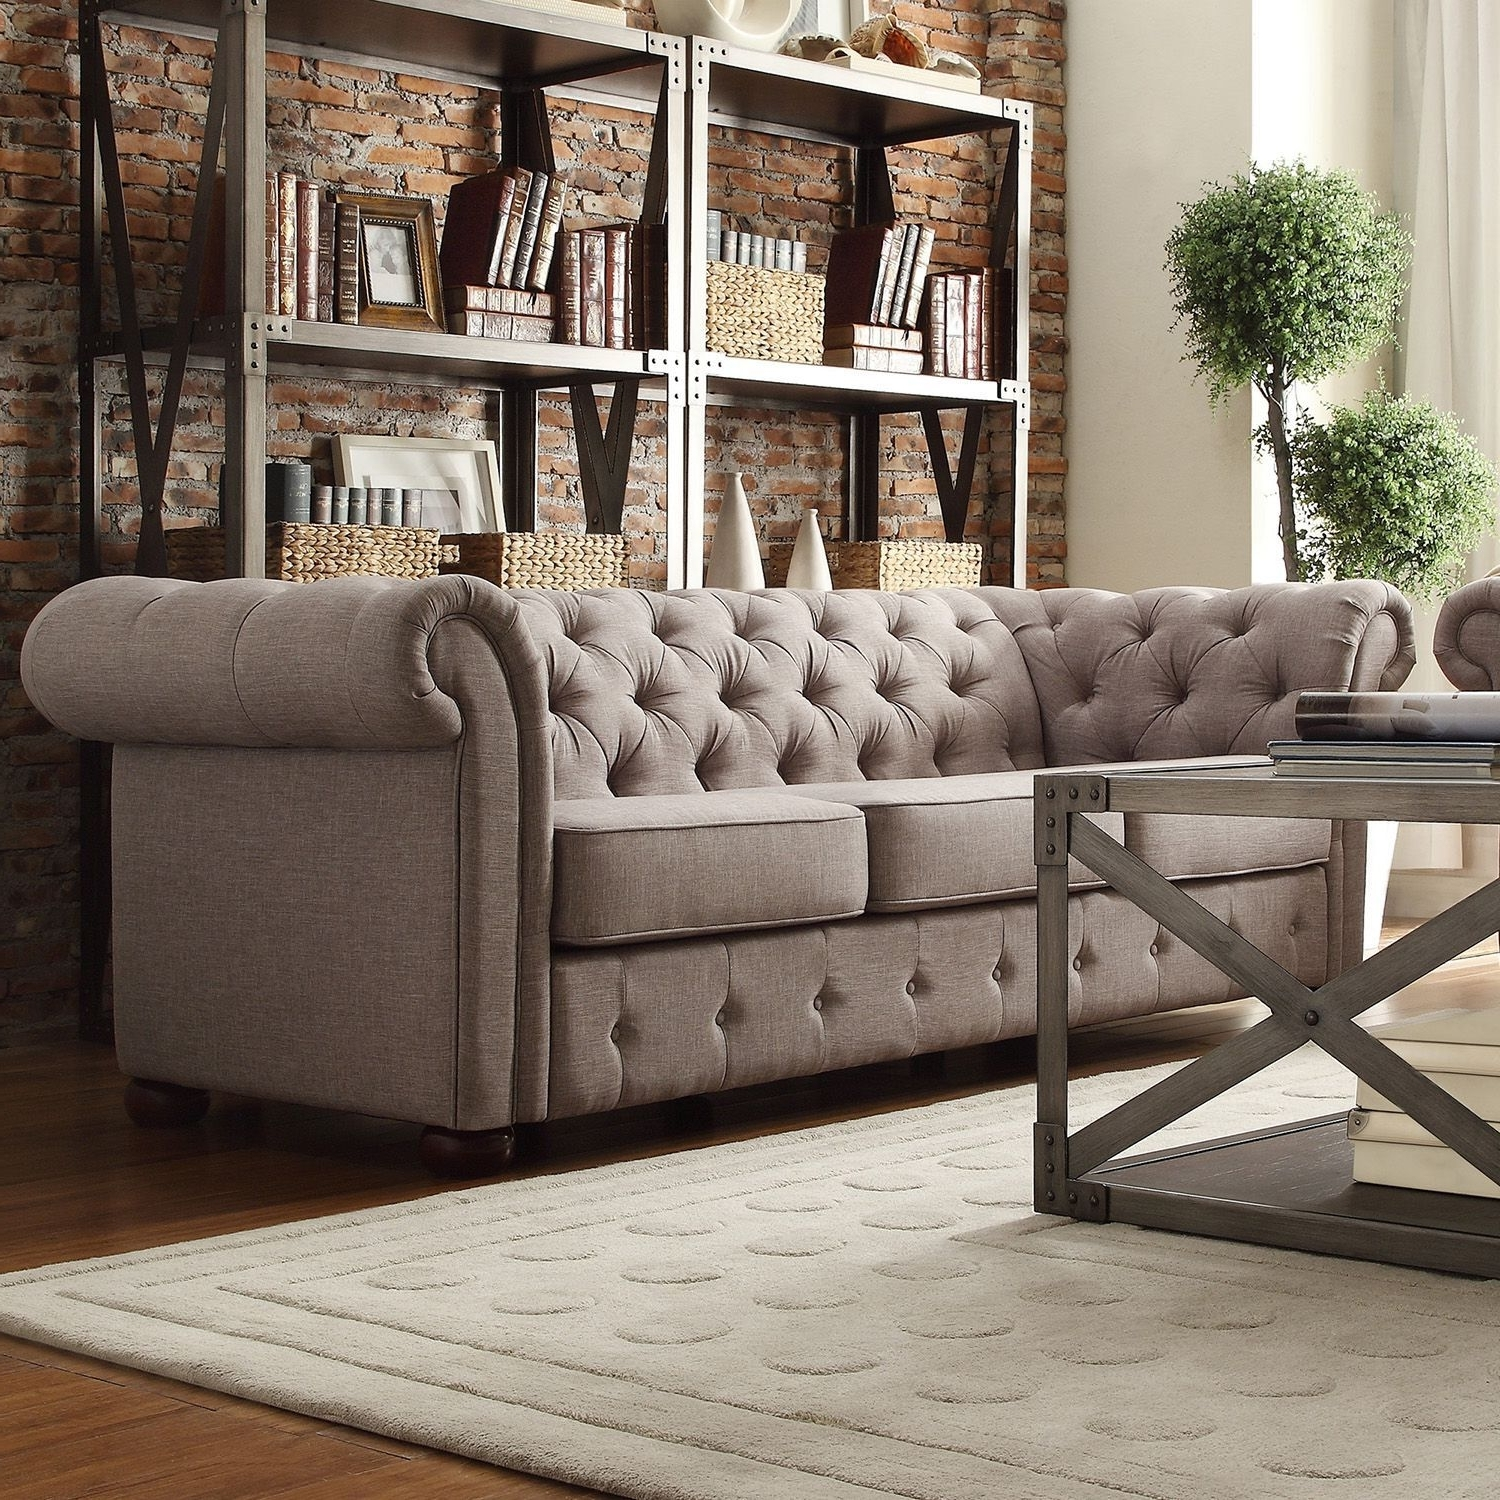 Tufted Linen Sofas Intended For Well Known Kyle Tufted Linen Sofa – Choose Color (Gallery 4 of 20)